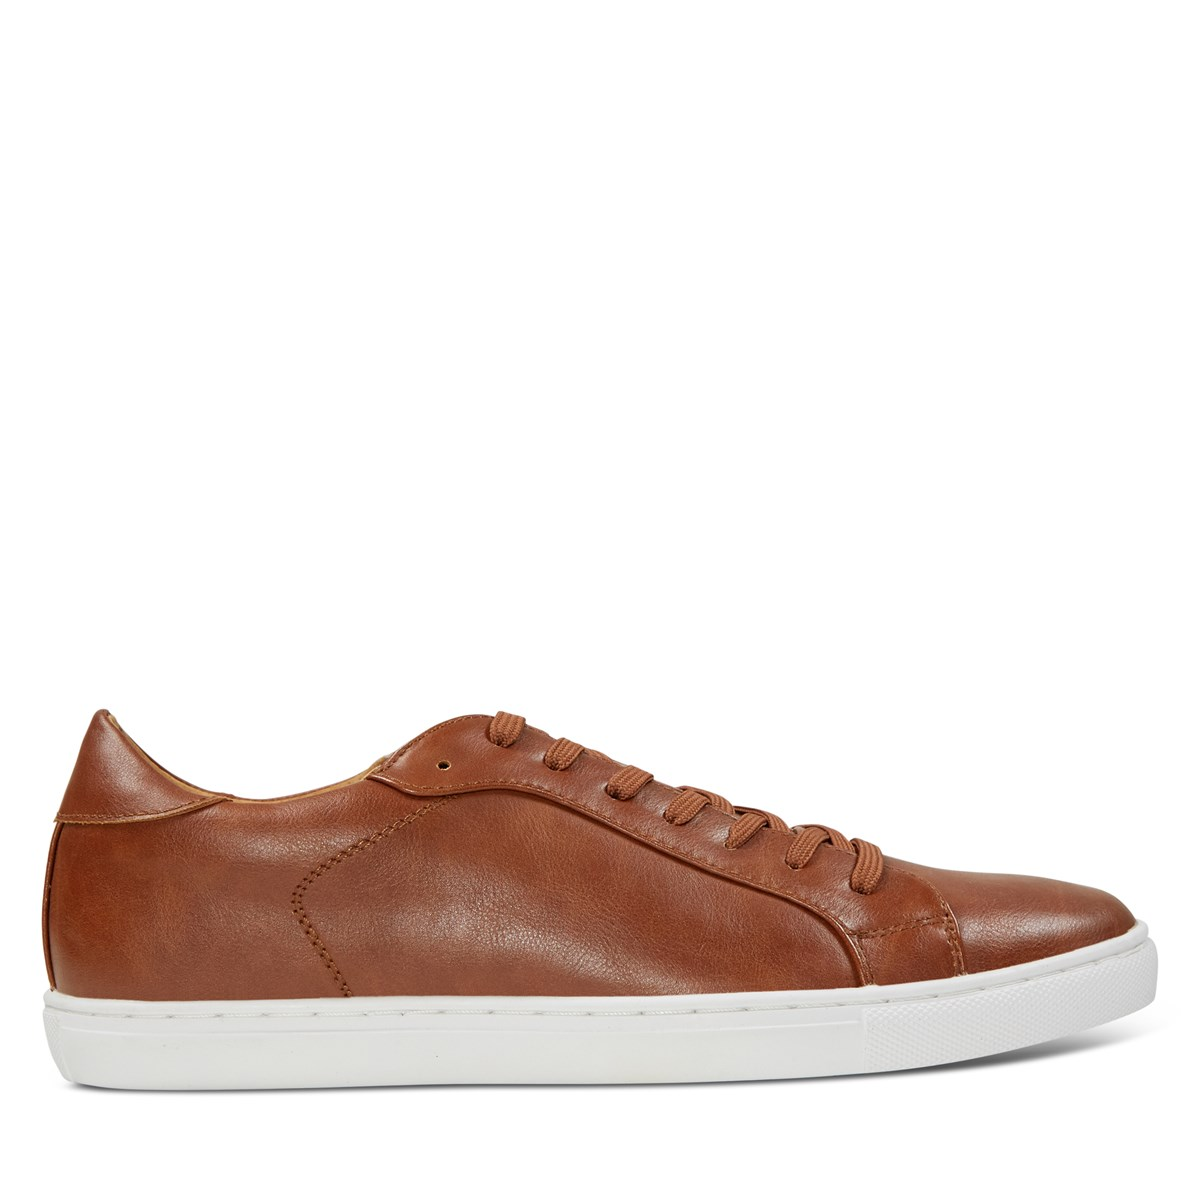 Men's Adriano Sneaker in Tan